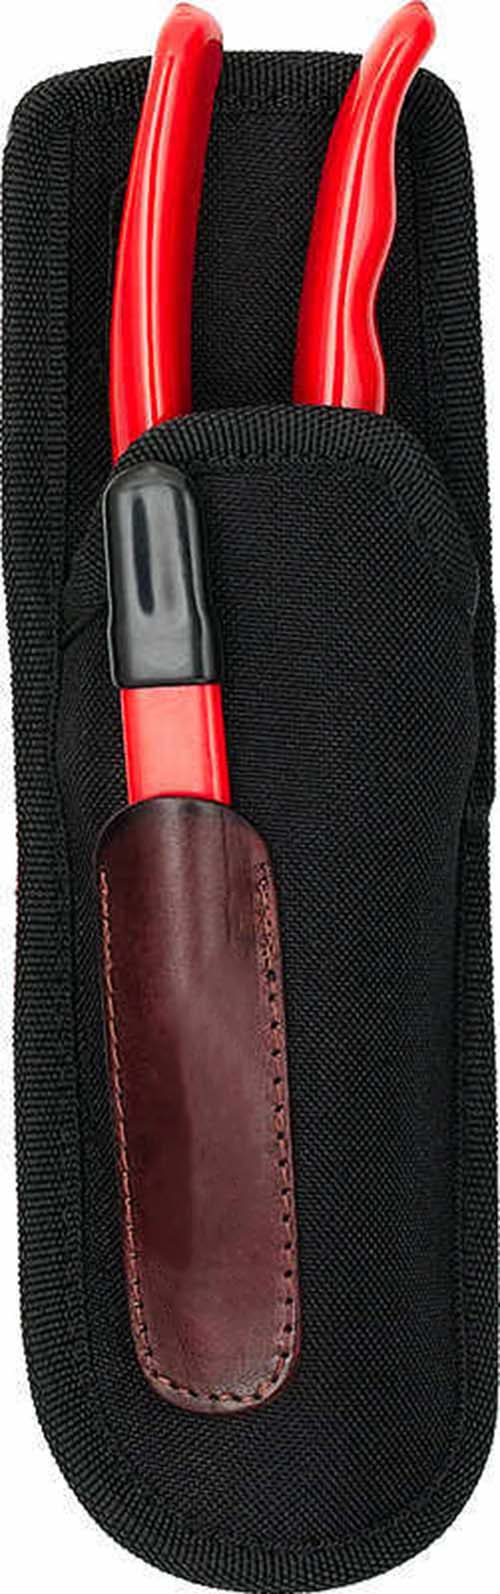 Universal Tool Pouch HJ249 with Sharpener Pocket